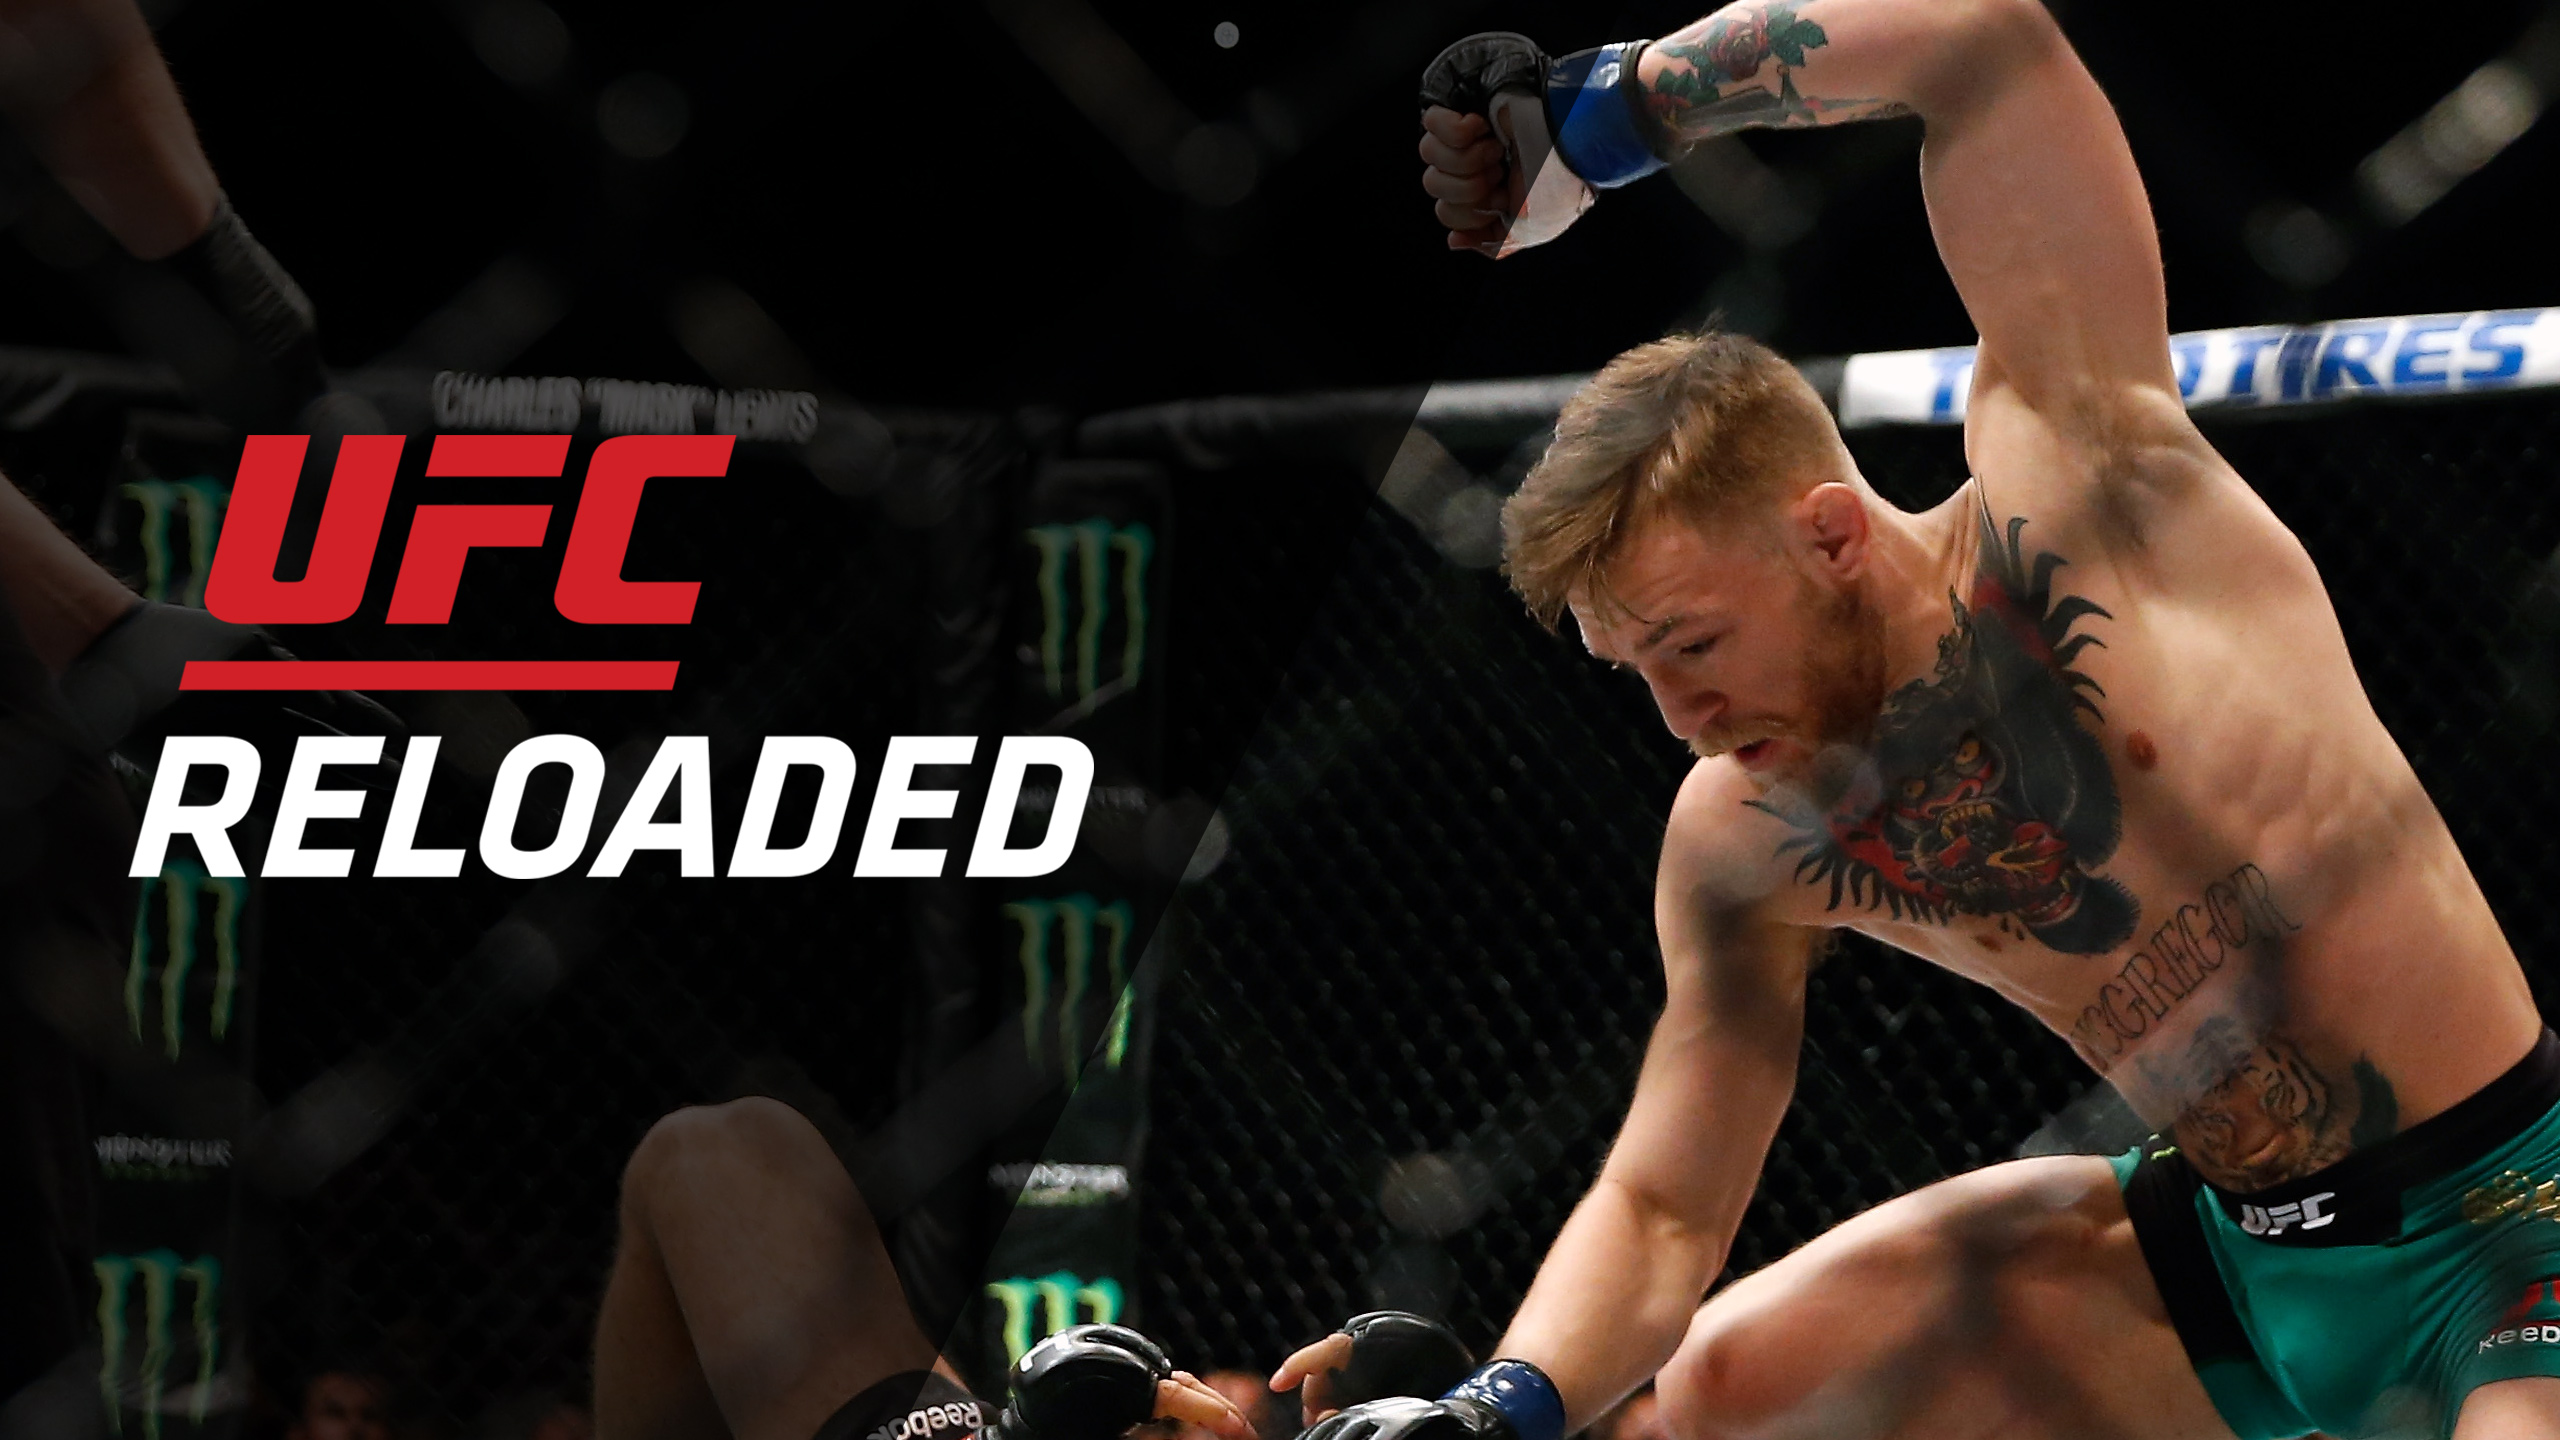 UFC Reloaded: 194: Aldo vs. McGregor